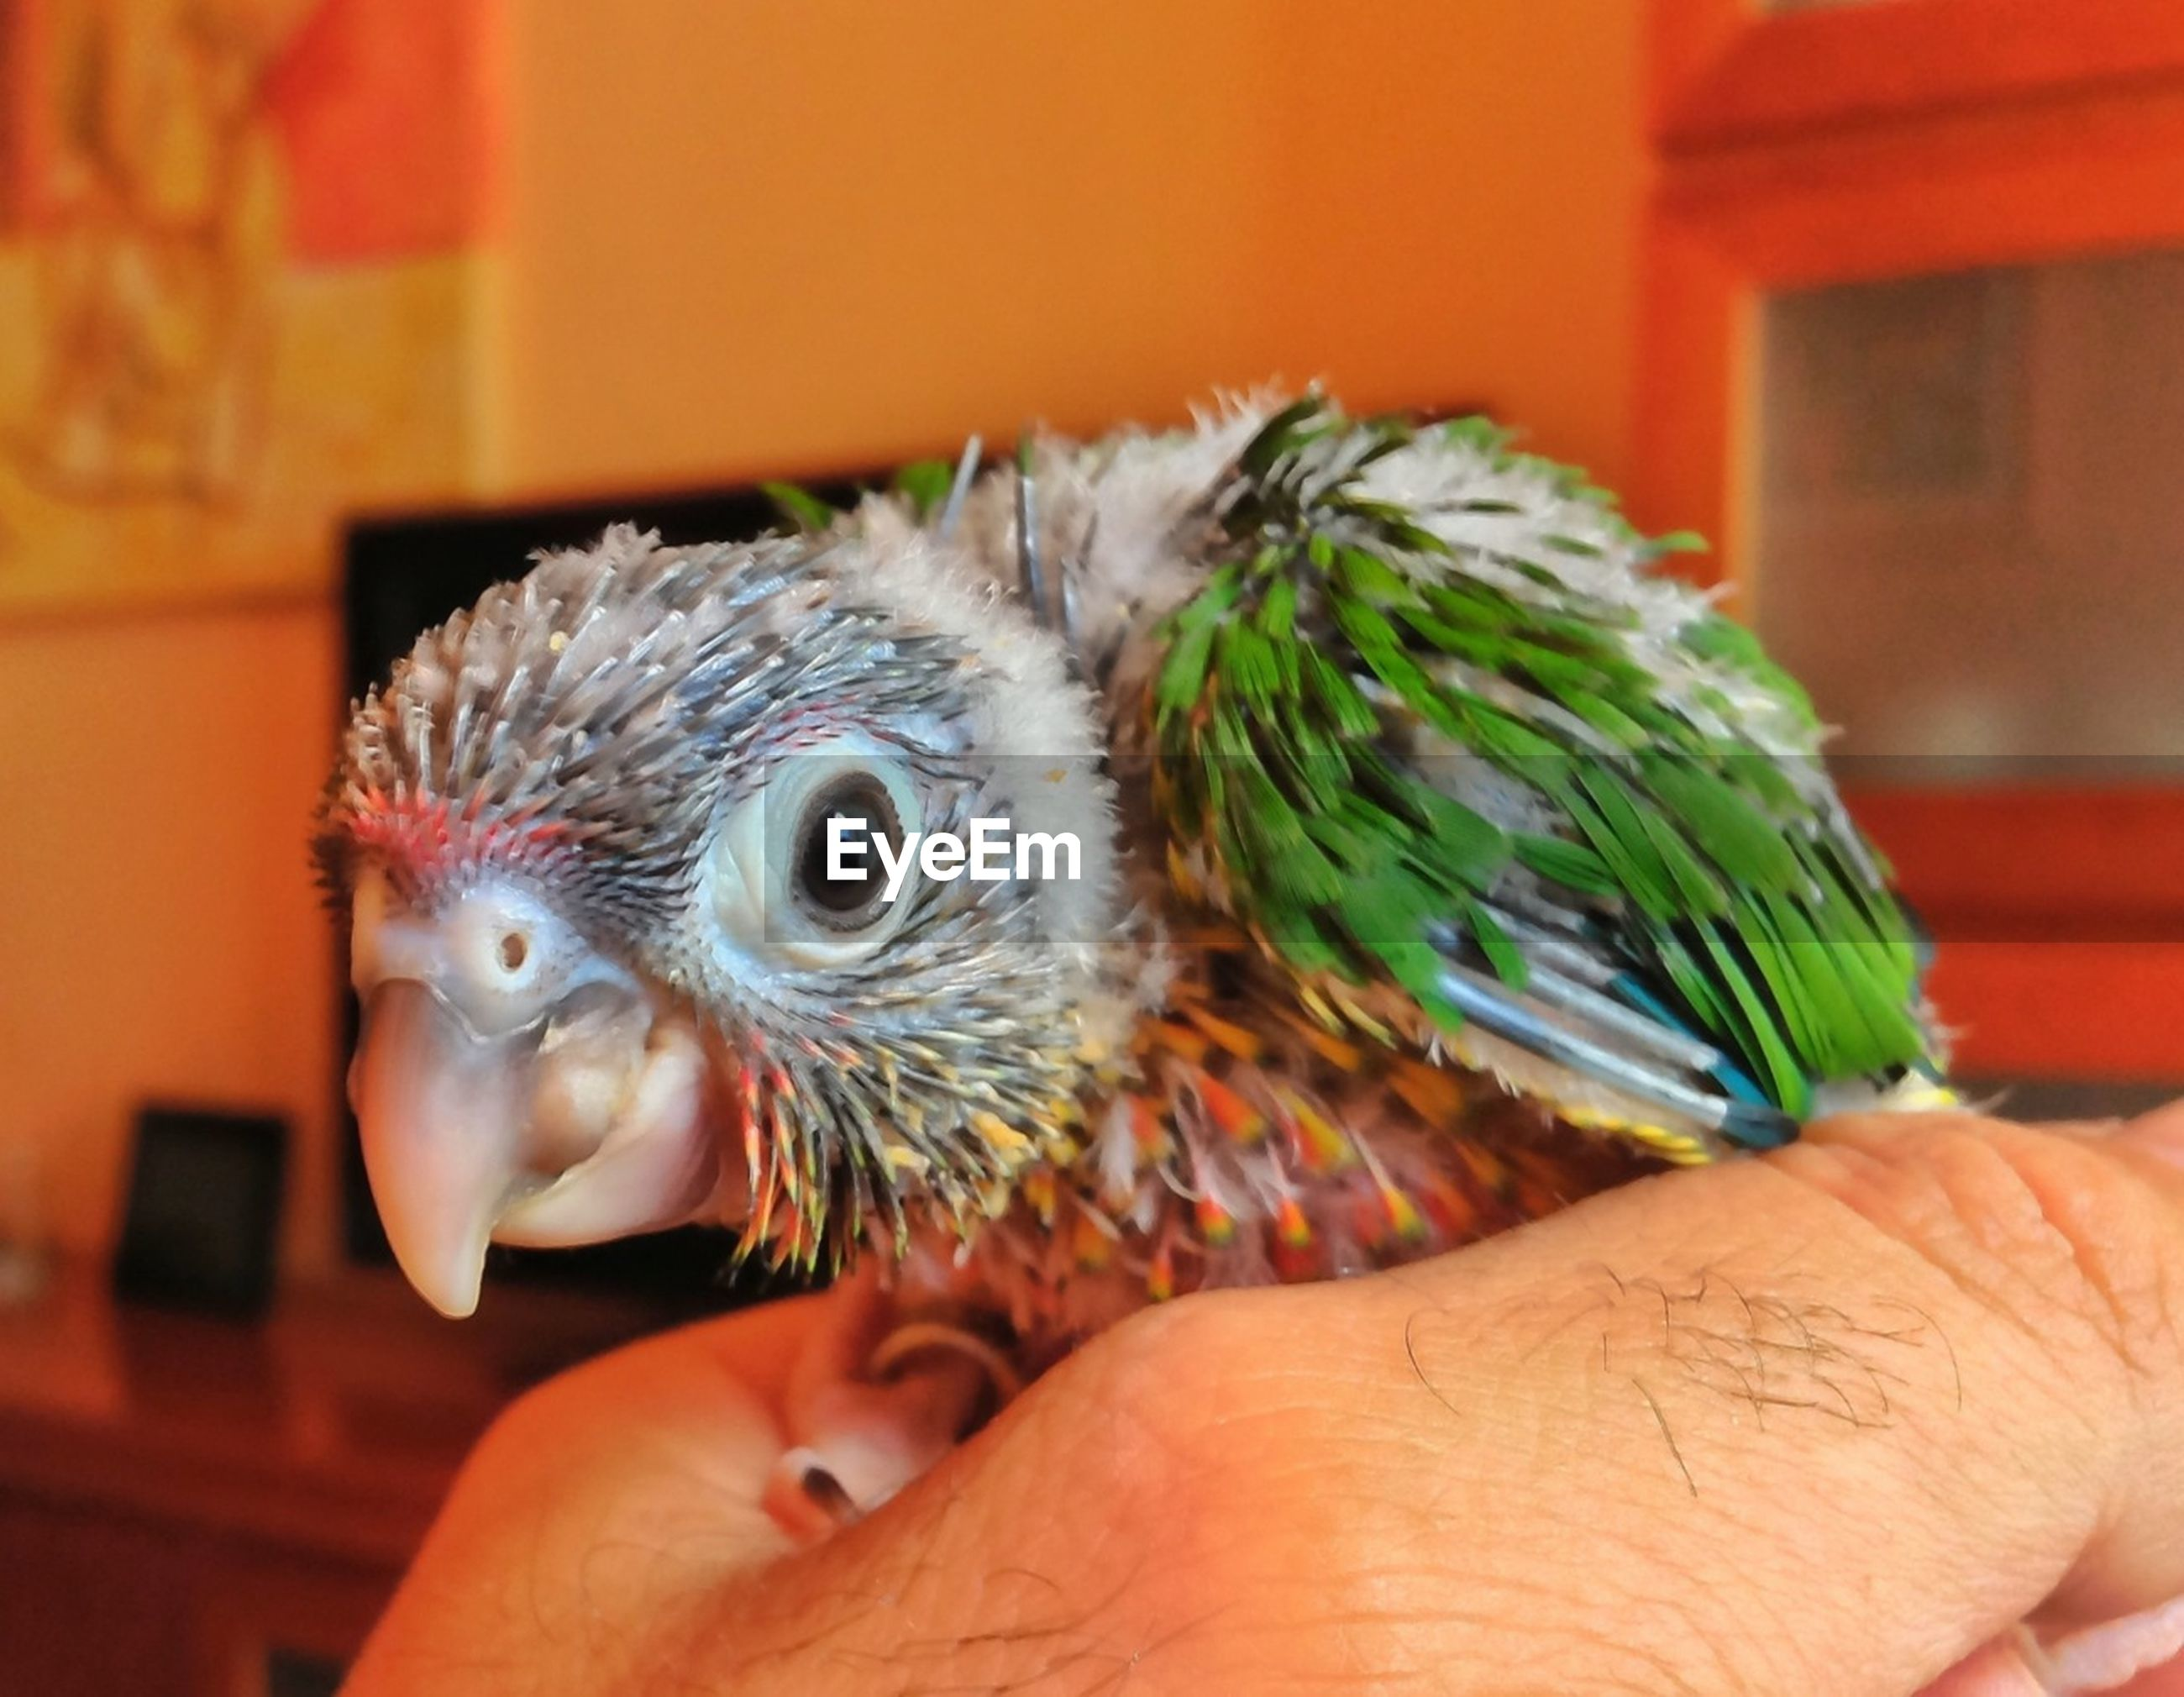 person, indoors, animal themes, one animal, focus on foreground, close-up, holding, part of, cropped, bird, unrecognizable person, lifestyles, human finger, wildlife, animals in the wild, parrot, food